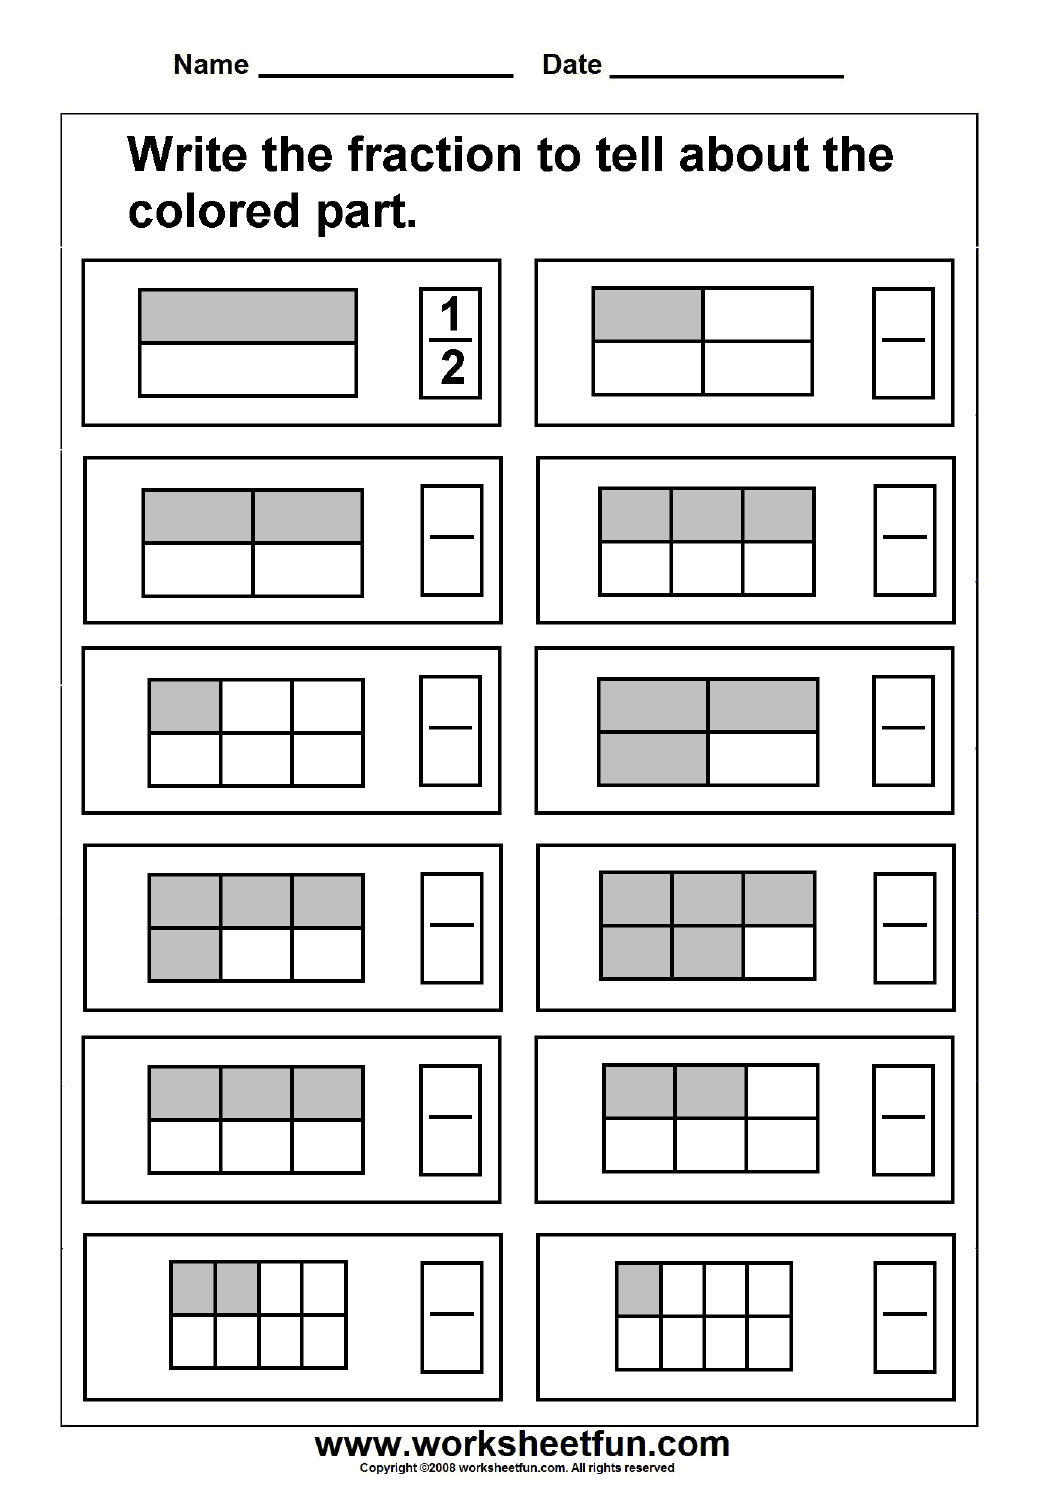 Fraction FREE Printable Worksheets Worksheetfun – Shading Fractions Worksheet